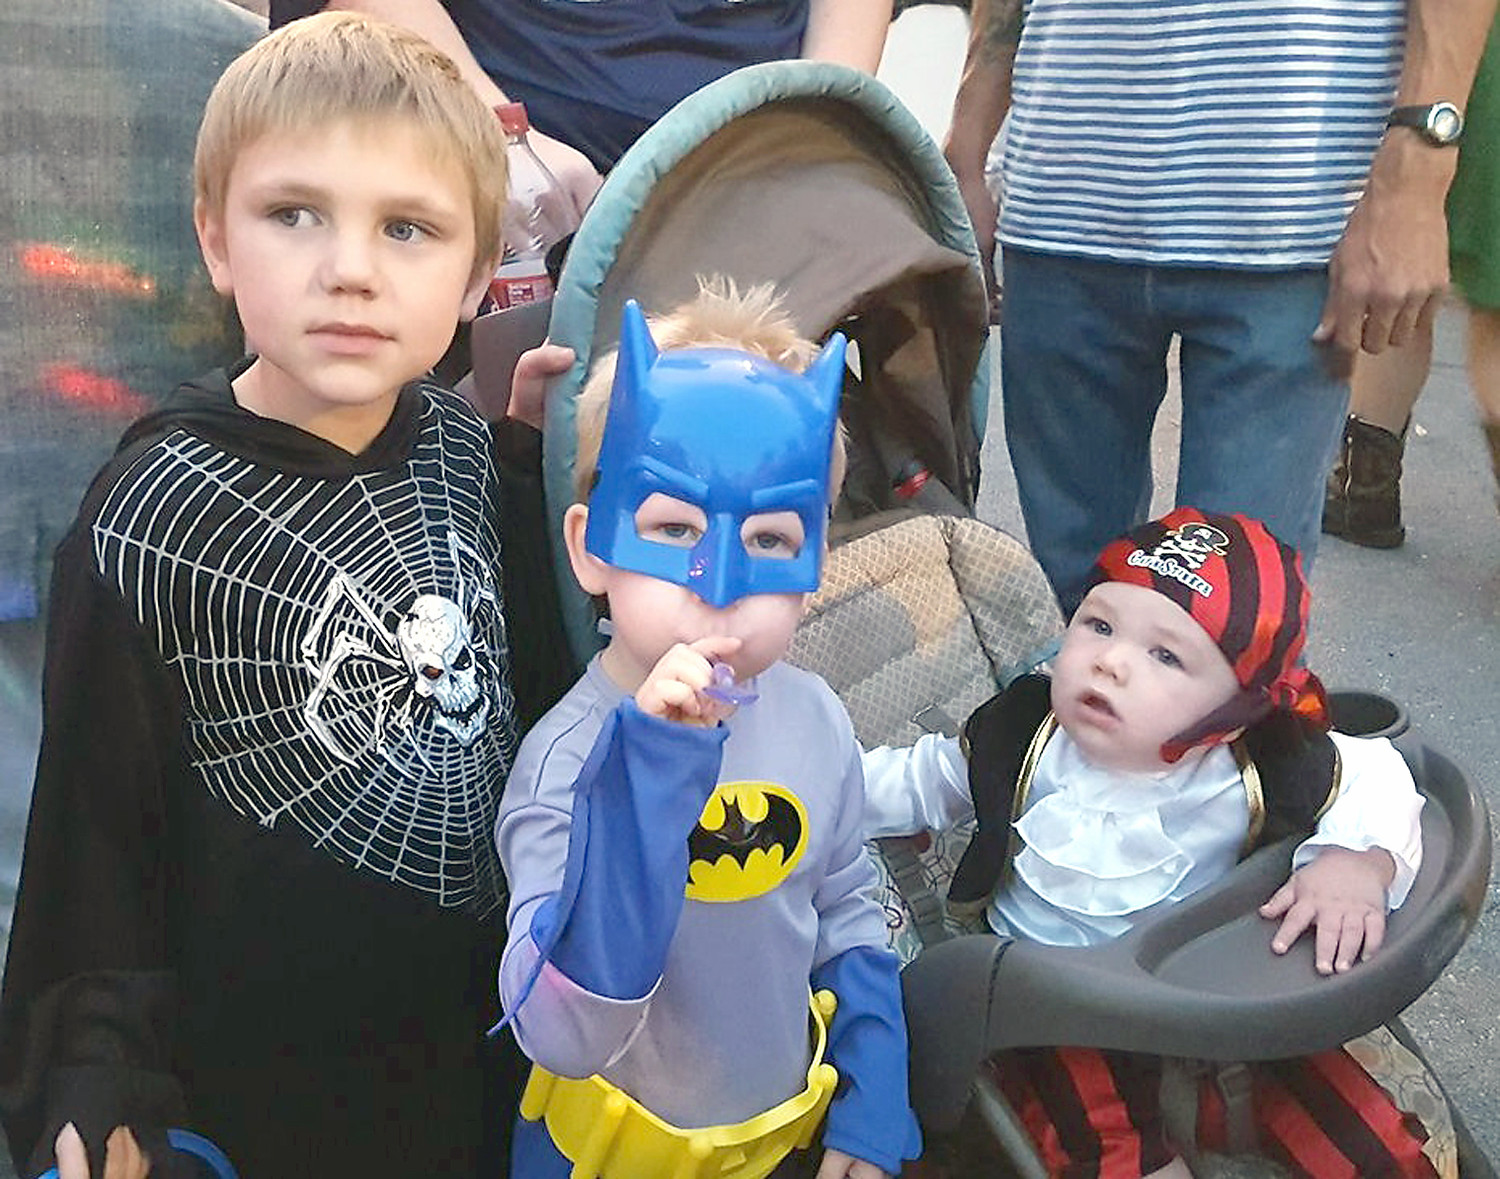 SUPERHEROES, pirates and spiders have been popular costumes for children attending the MainStreet Cleveland Downtown Halloween Block Party.